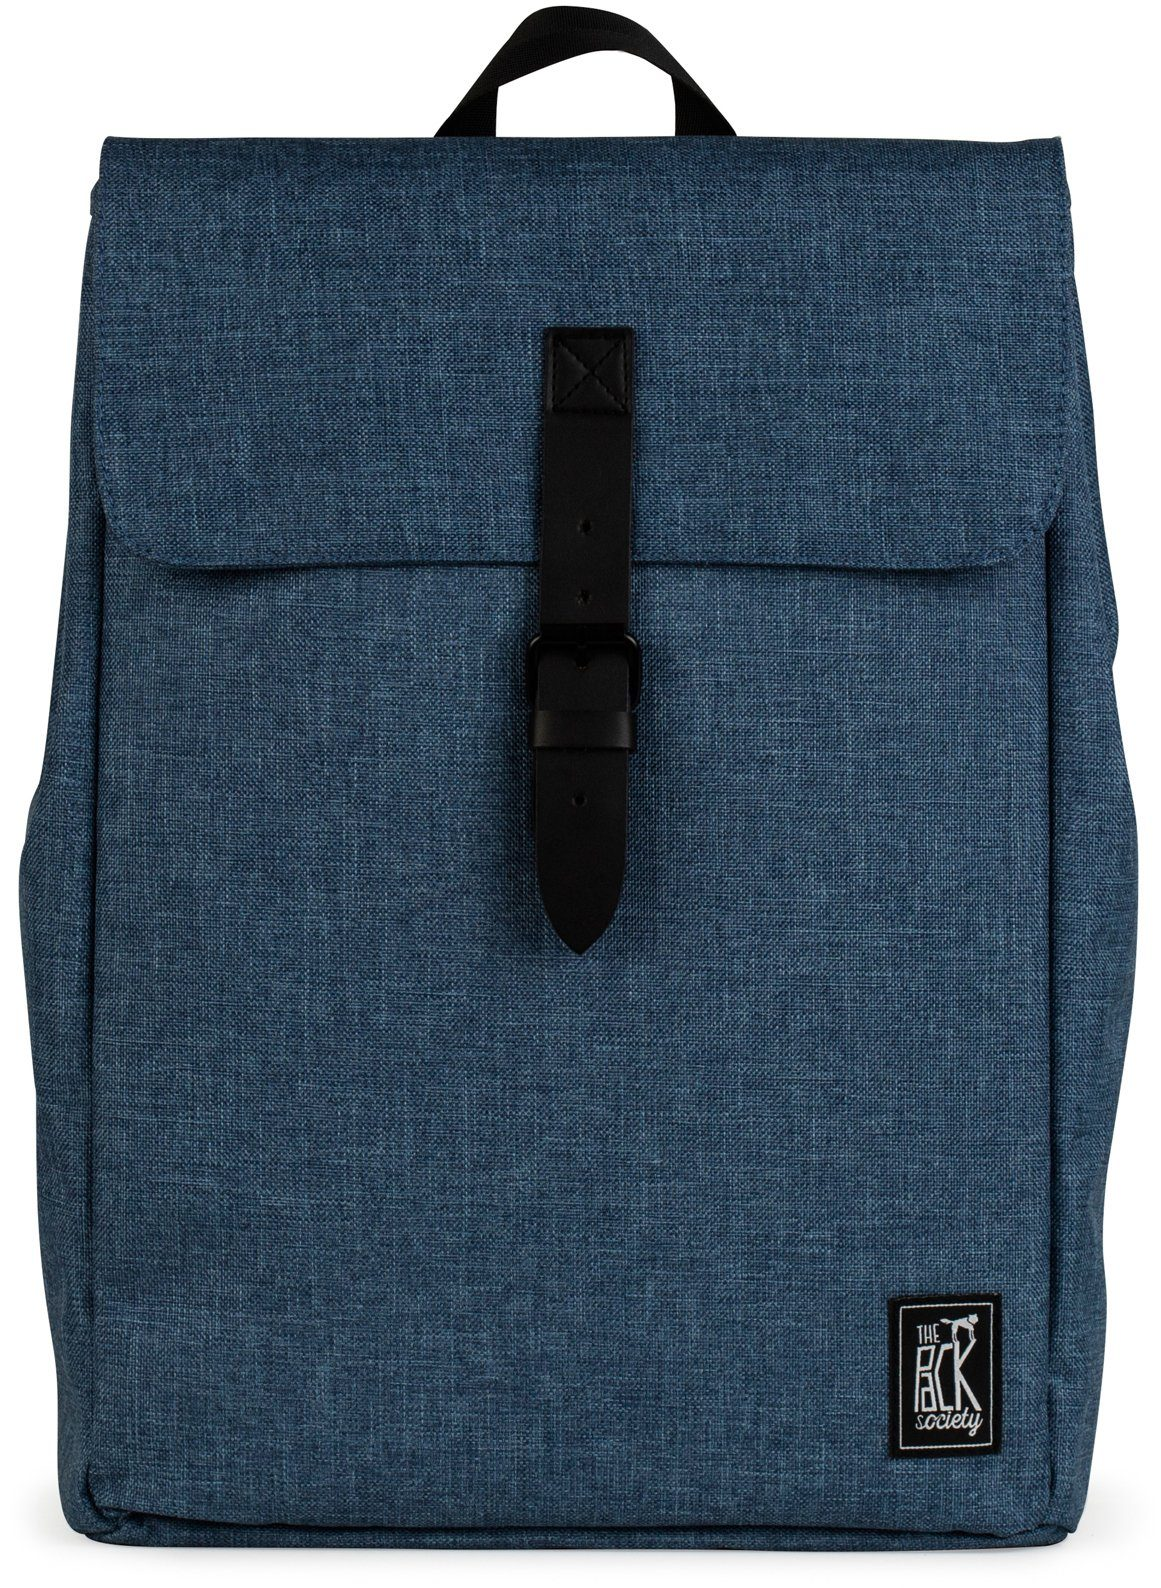 The Pack Society Rucksack, »Square Backpack Capsule, light blue duo tone«